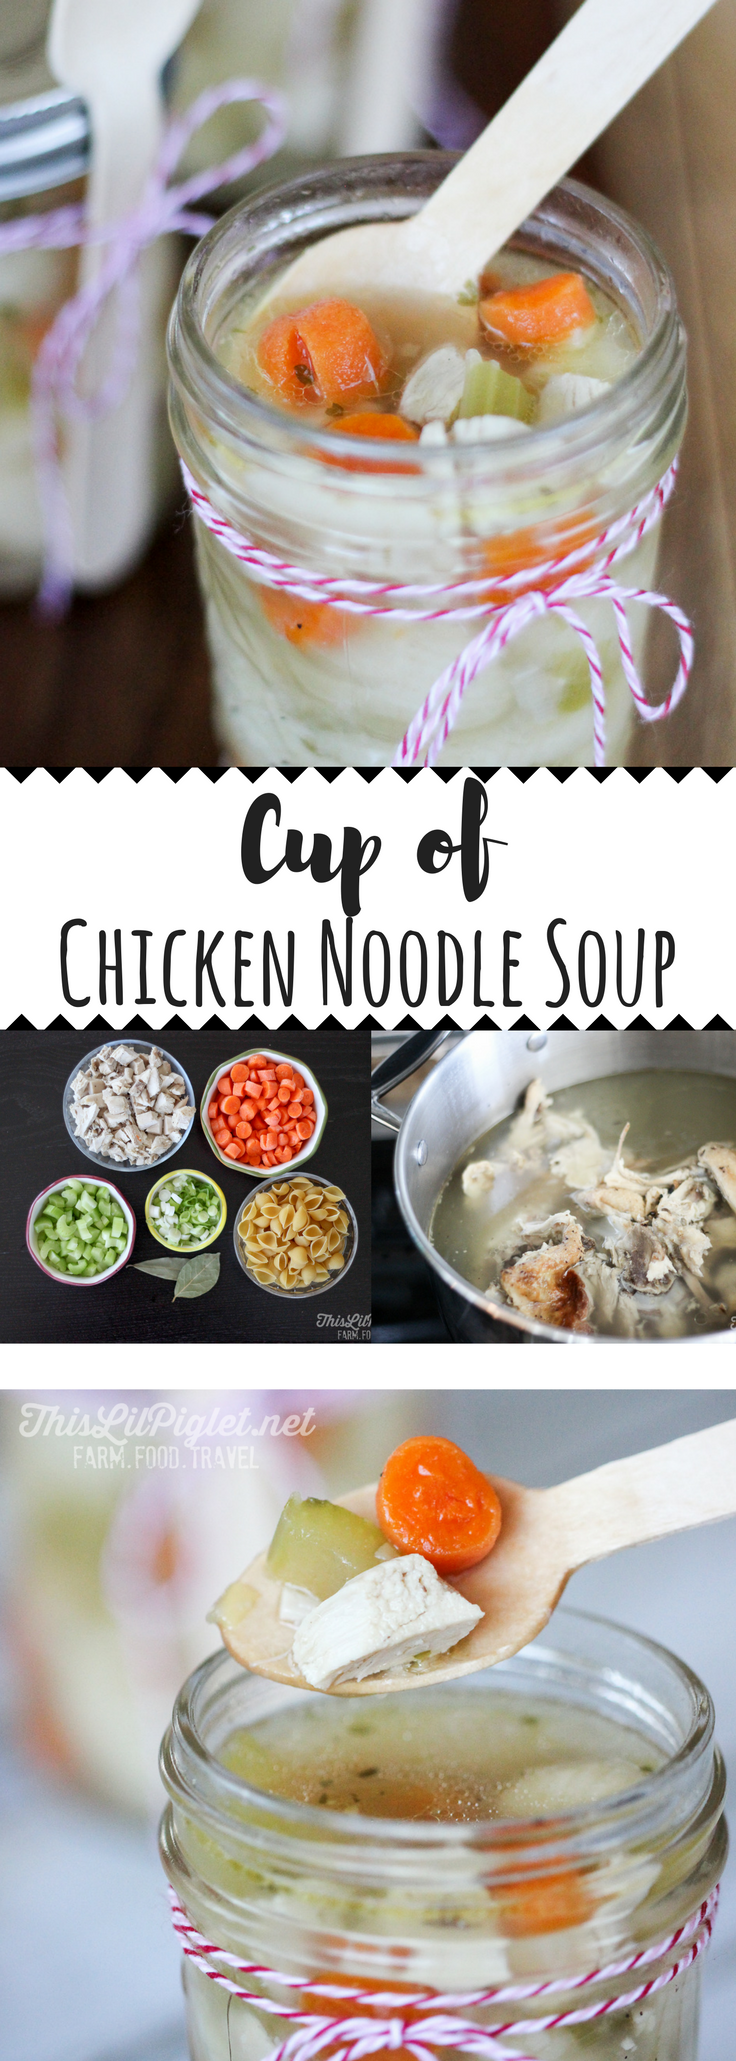 Cup of Chicken Noodle Soup for a Gift Idea or On-the-Go // thislilpiglet.net